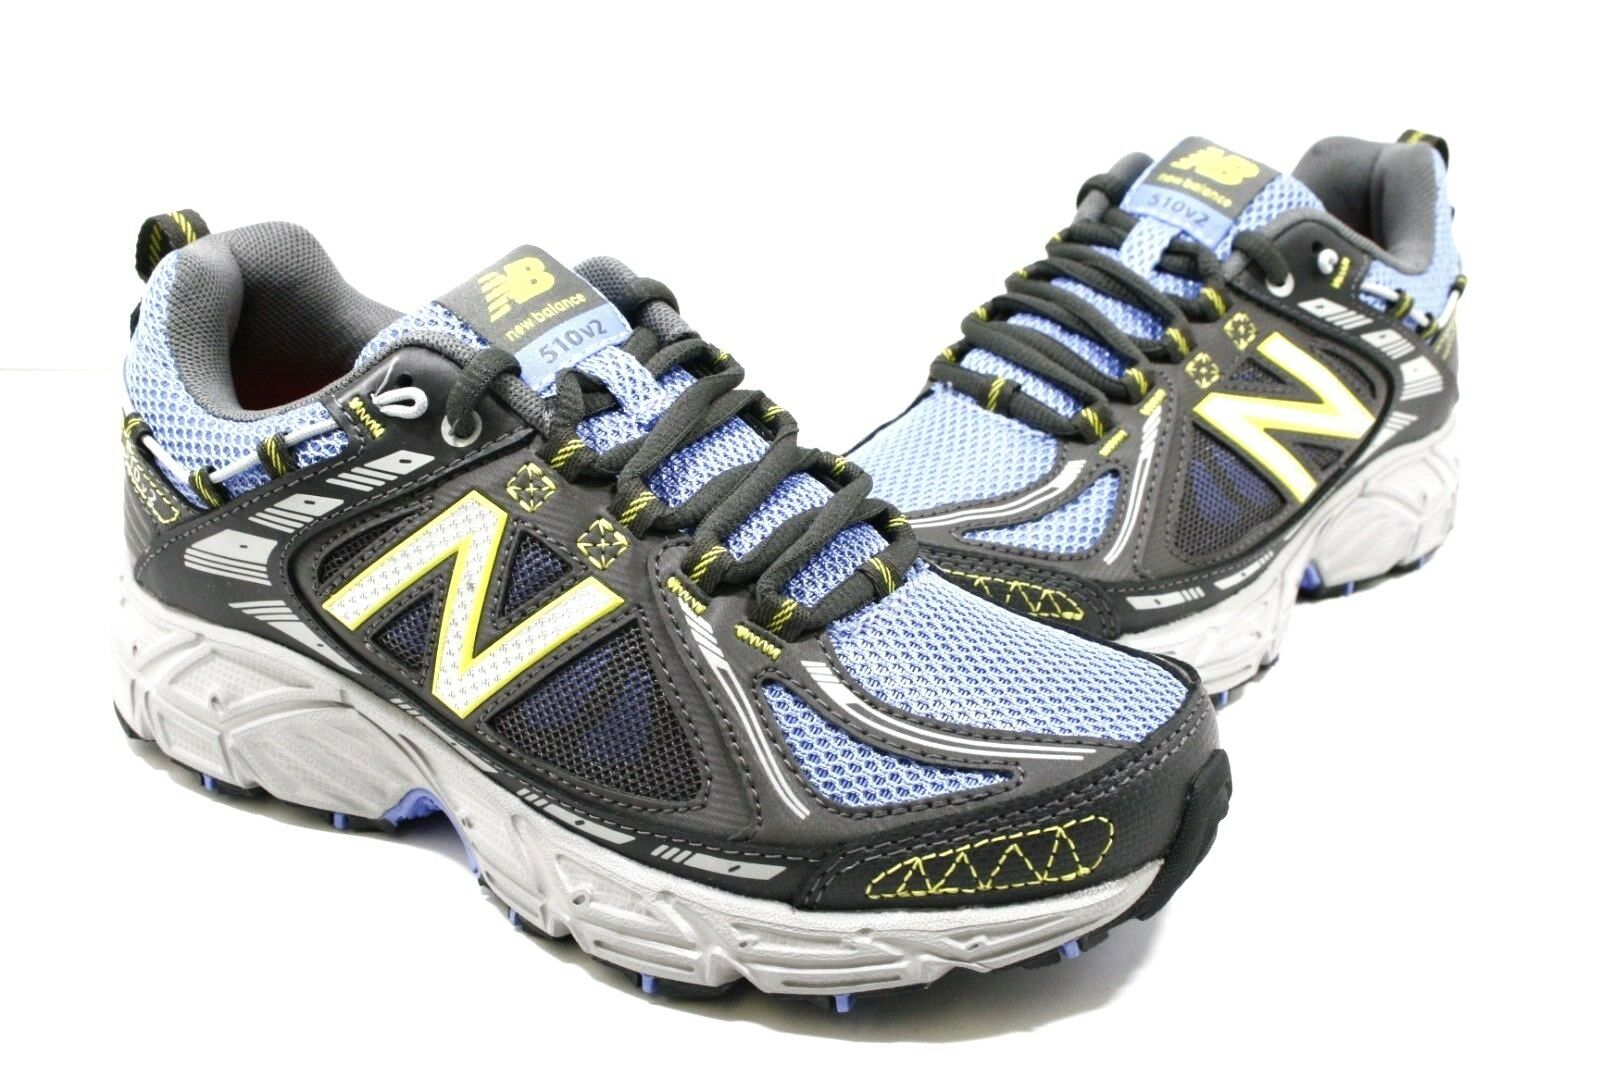 New Balance Women's Trail Running Shoes WT510BL2